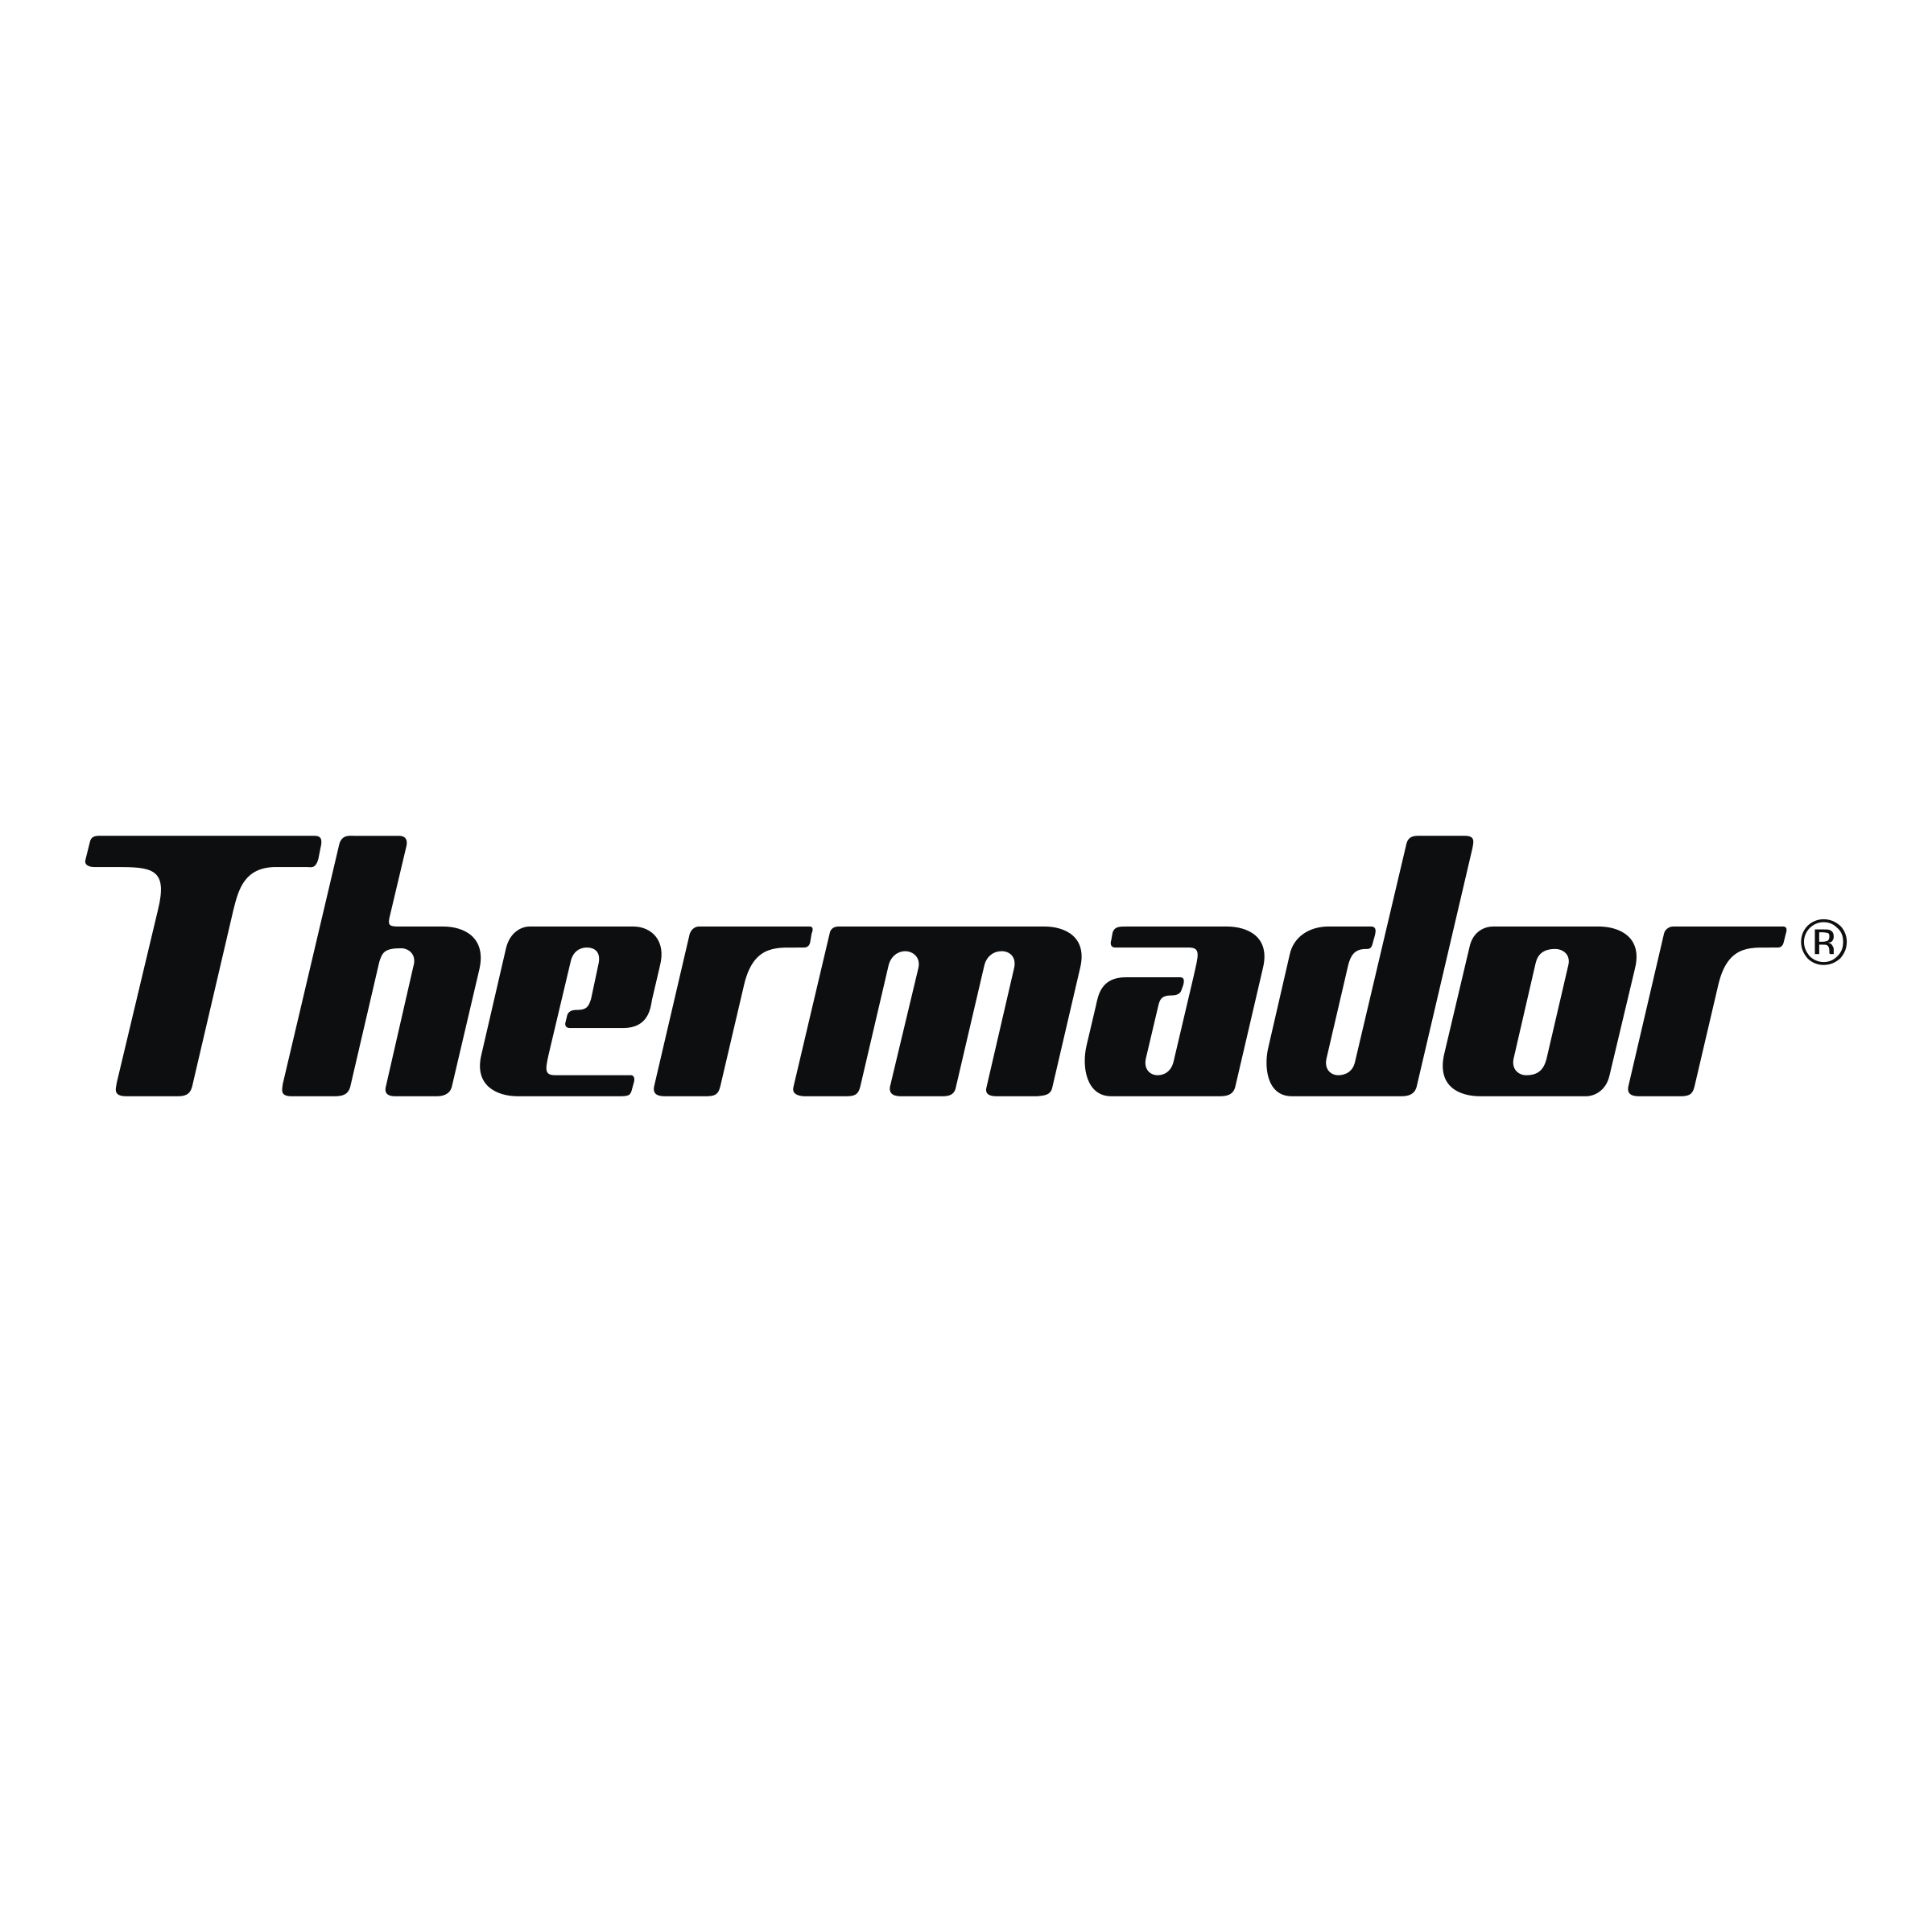 thermador-logo-297x68.png